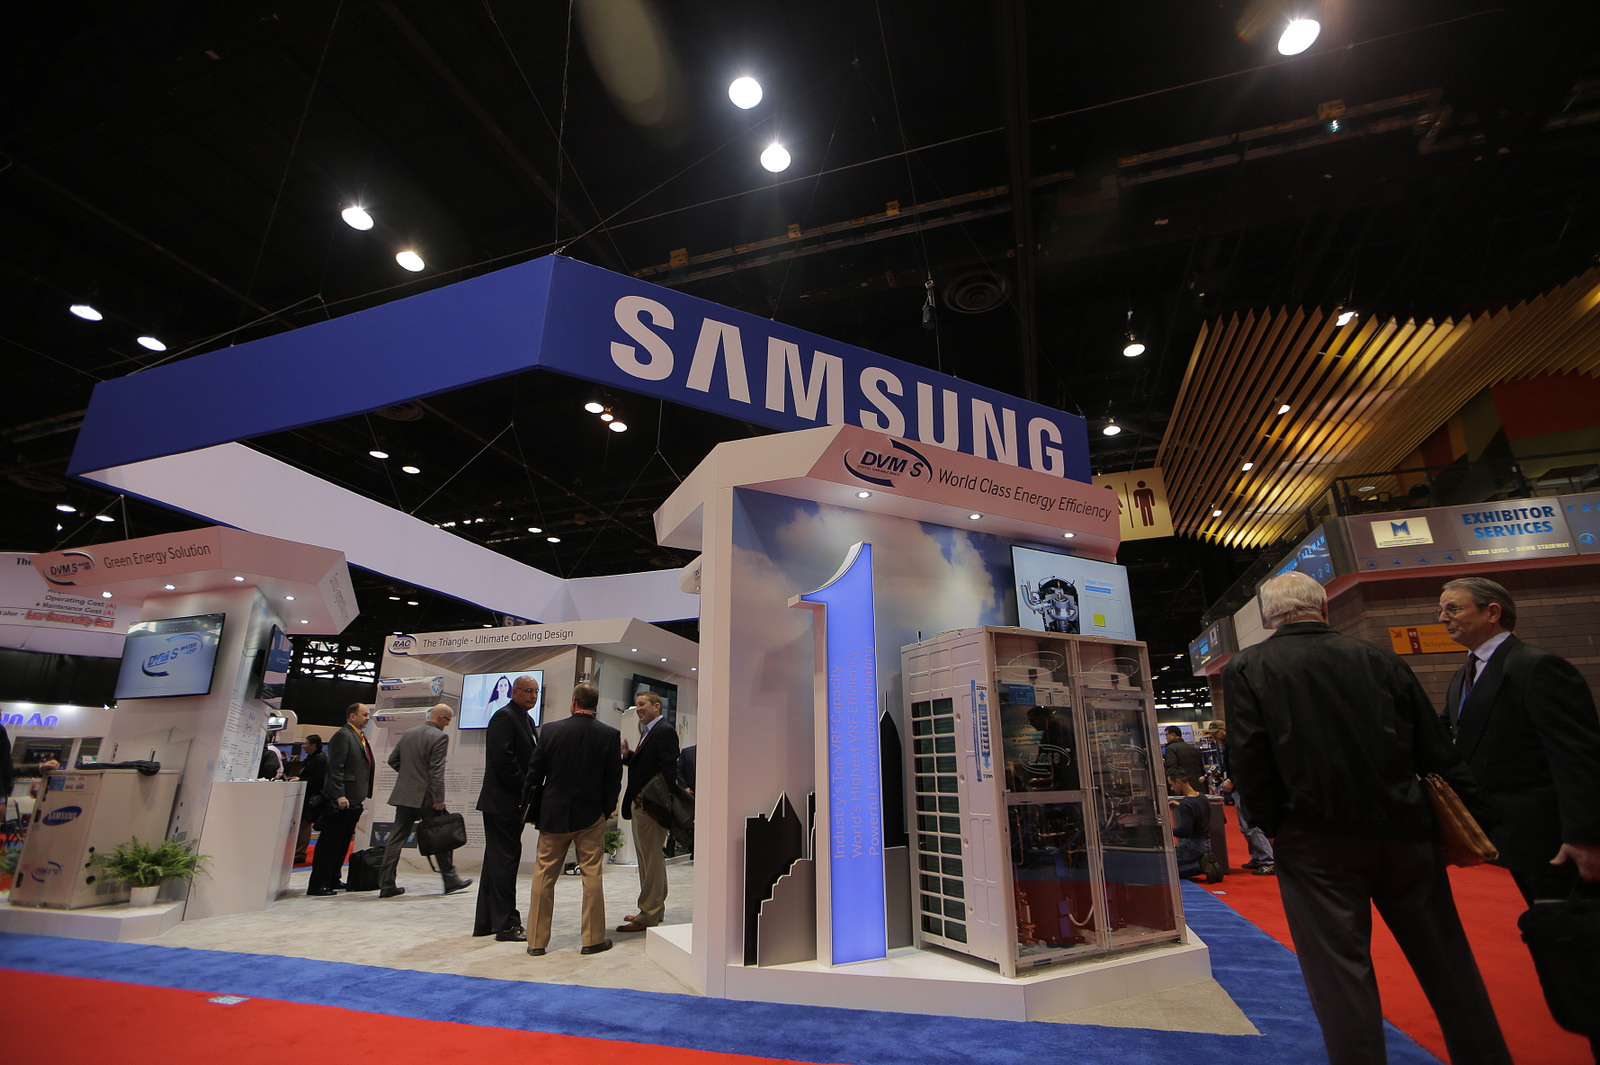 Samsung and MS said Tuesday they have decided to end their yearslong patent fee dispute but declined to provide details on the conditions of the agreement. (image: Samsung Electronics)